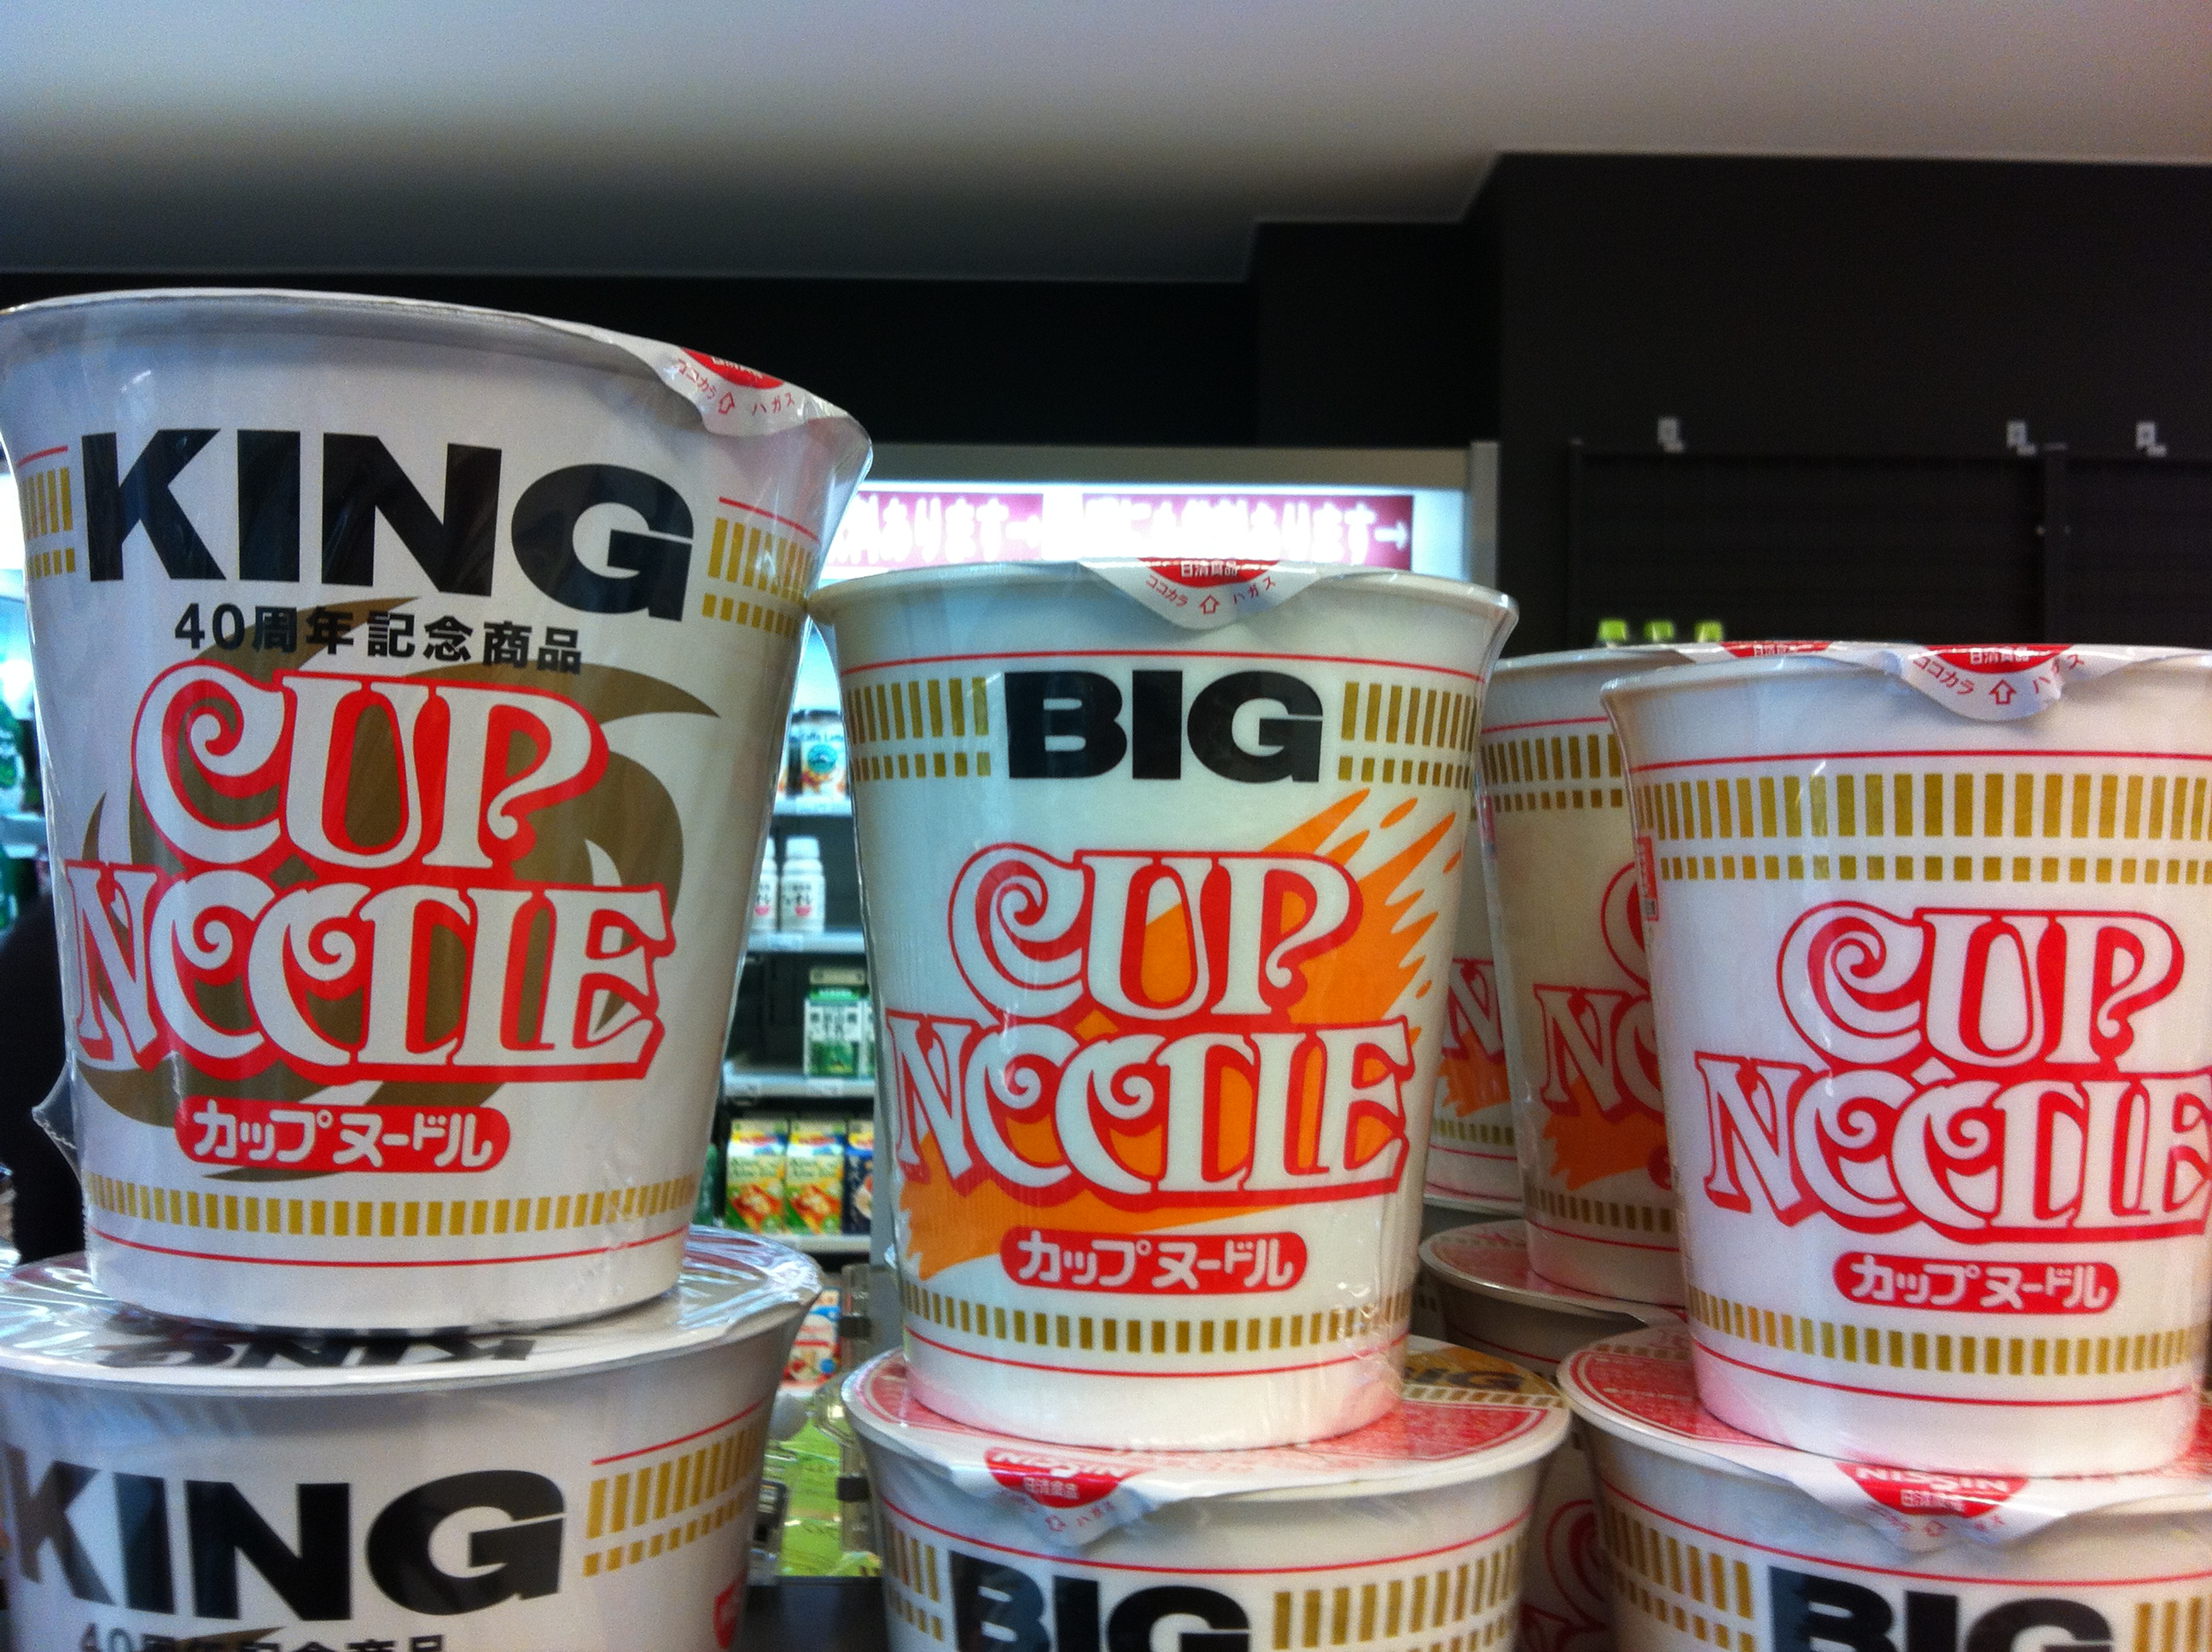 Cup noodles. I want KING size !!